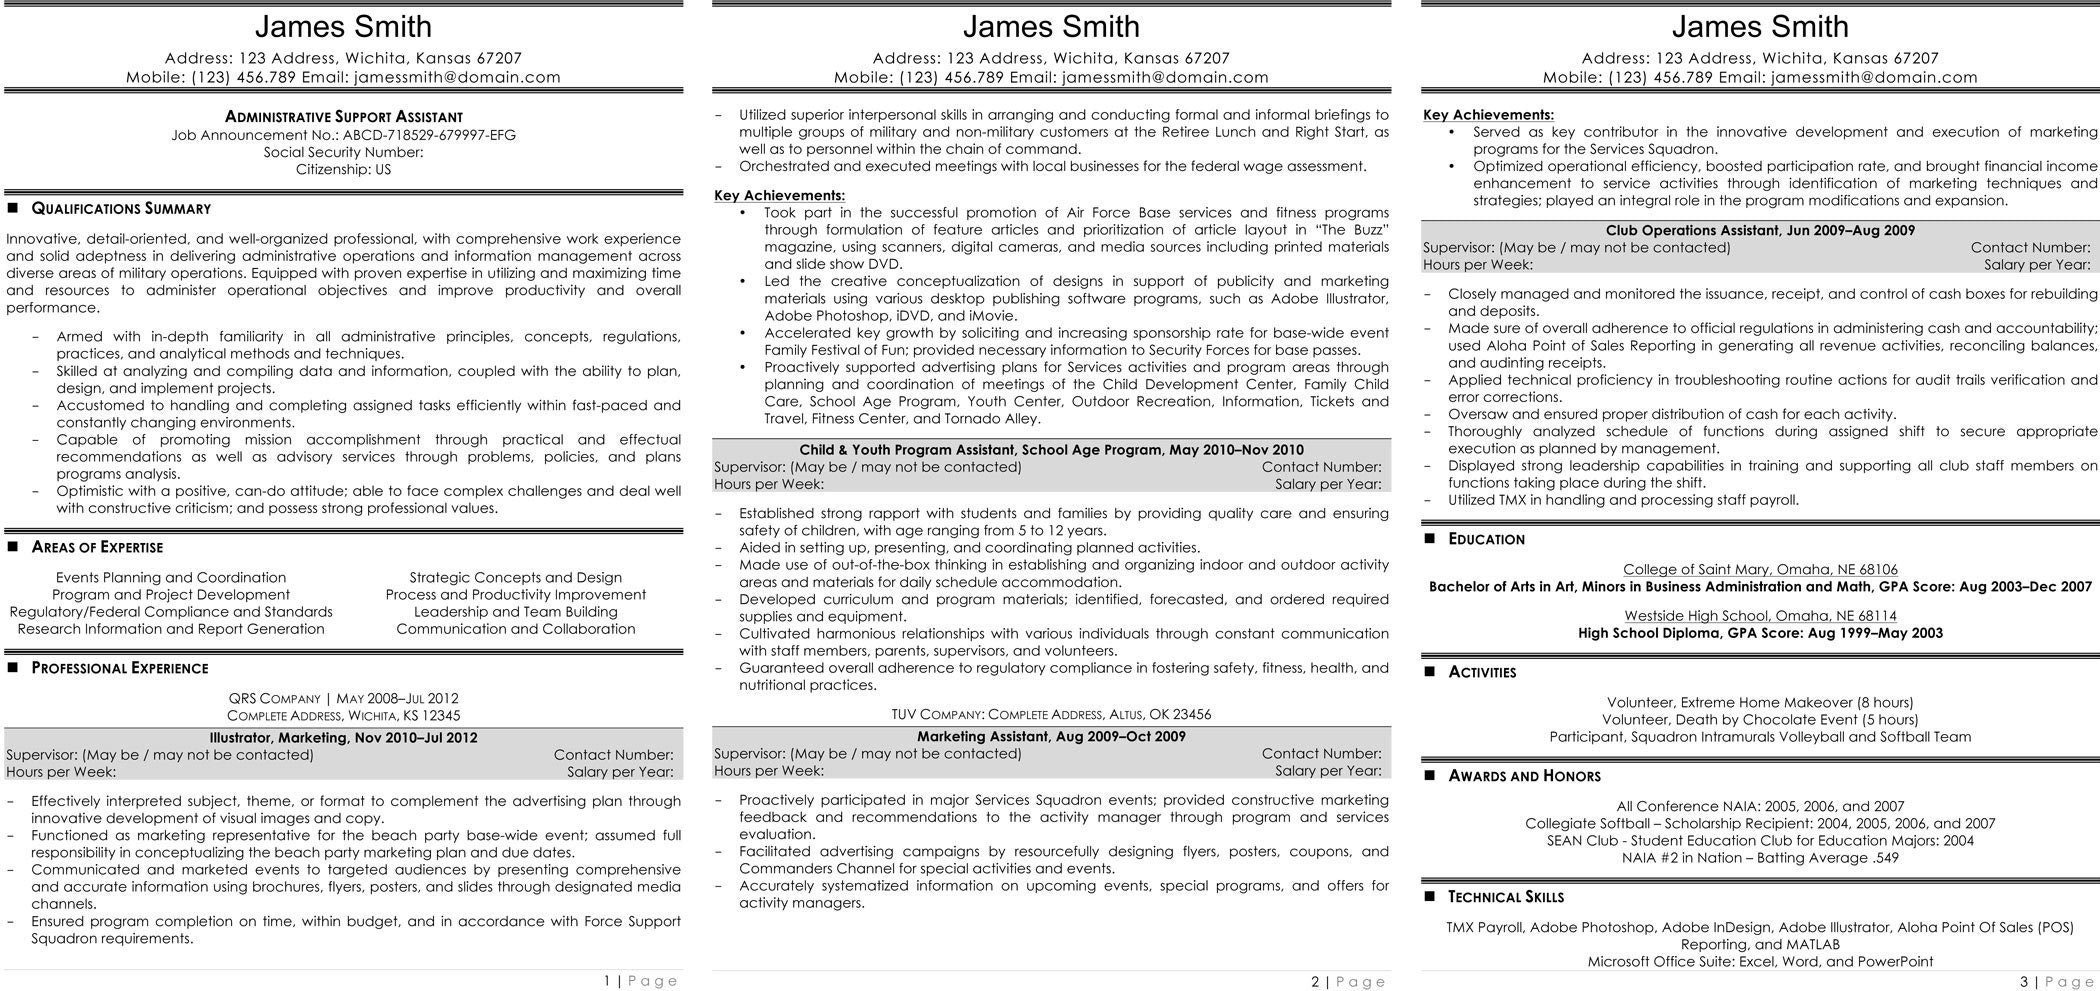 Medical Administrative assistant Resume - Medical Administrative assistant Resume Unique Medical